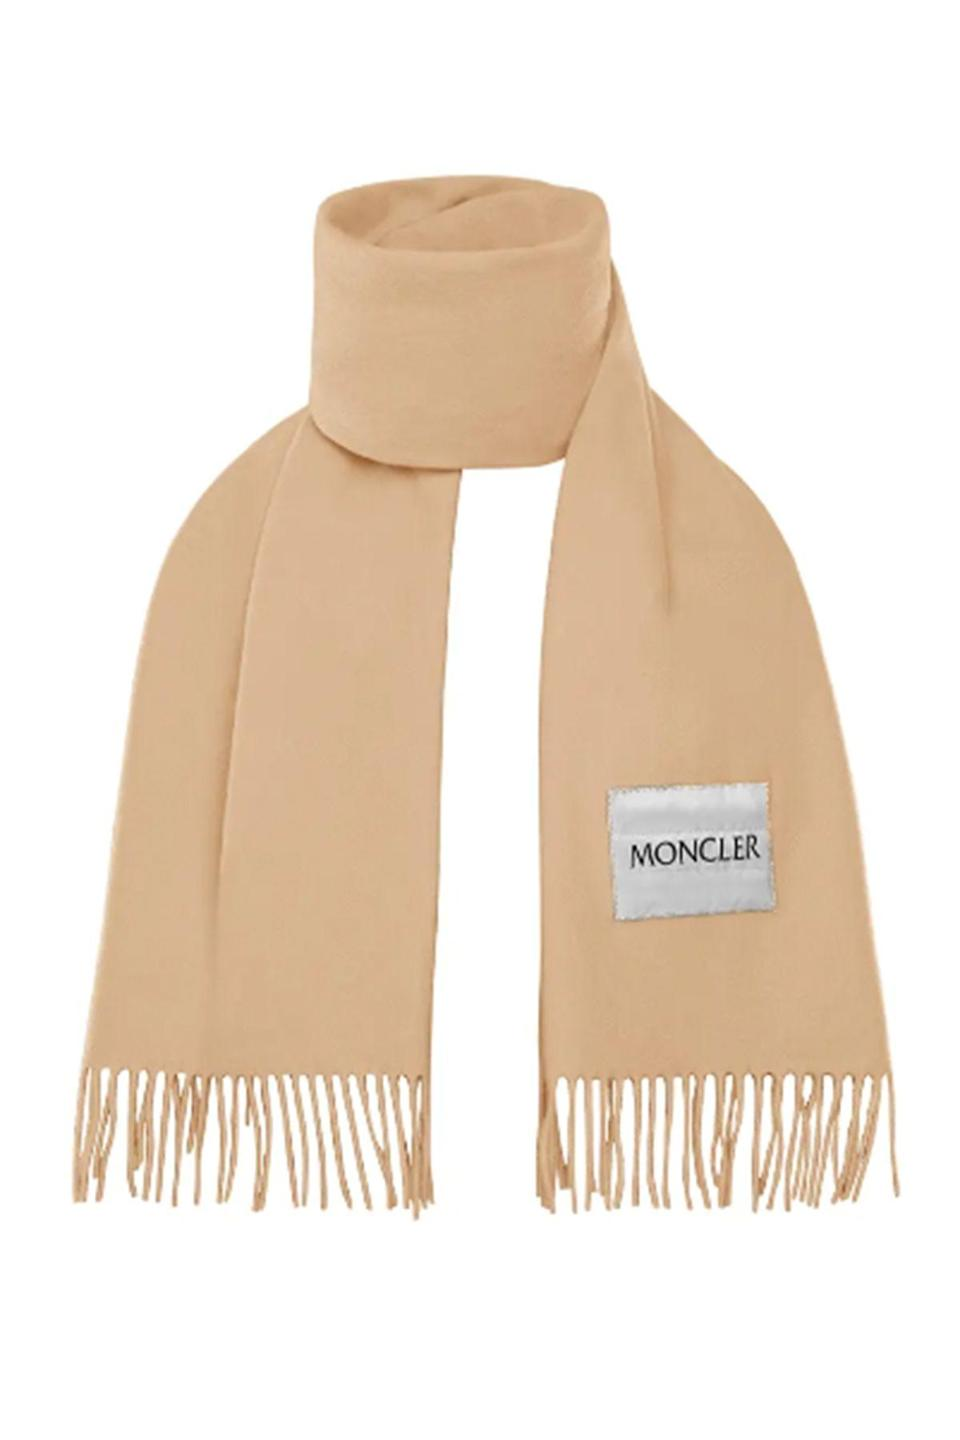 """<p><strong>Moncler</strong></p><p>nordstrom.com</p><p><strong>$280.00</strong></p><p><a href=""""https://go.redirectingat.com?id=74968X1596630&url=https%3A%2F%2Fwww.nordstrom.com%2Fs%2Fmoncler-logo-patch-fringe-wool-scarf%2F5614871&sref=https%3A%2F%2Fwww.townandcountrymag.com%2Fstyle%2Ffashion-trends%2Fg28589058%2Fbest-fall-scarves%2F"""" rel=""""nofollow noopener"""" target=""""_blank"""" data-ylk=""""slk:Shop Now"""" class=""""link rapid-noclick-resp"""">Shop Now</a></p><p>A classic camel hue will never, <em>ever </em>go out of style. </p>"""